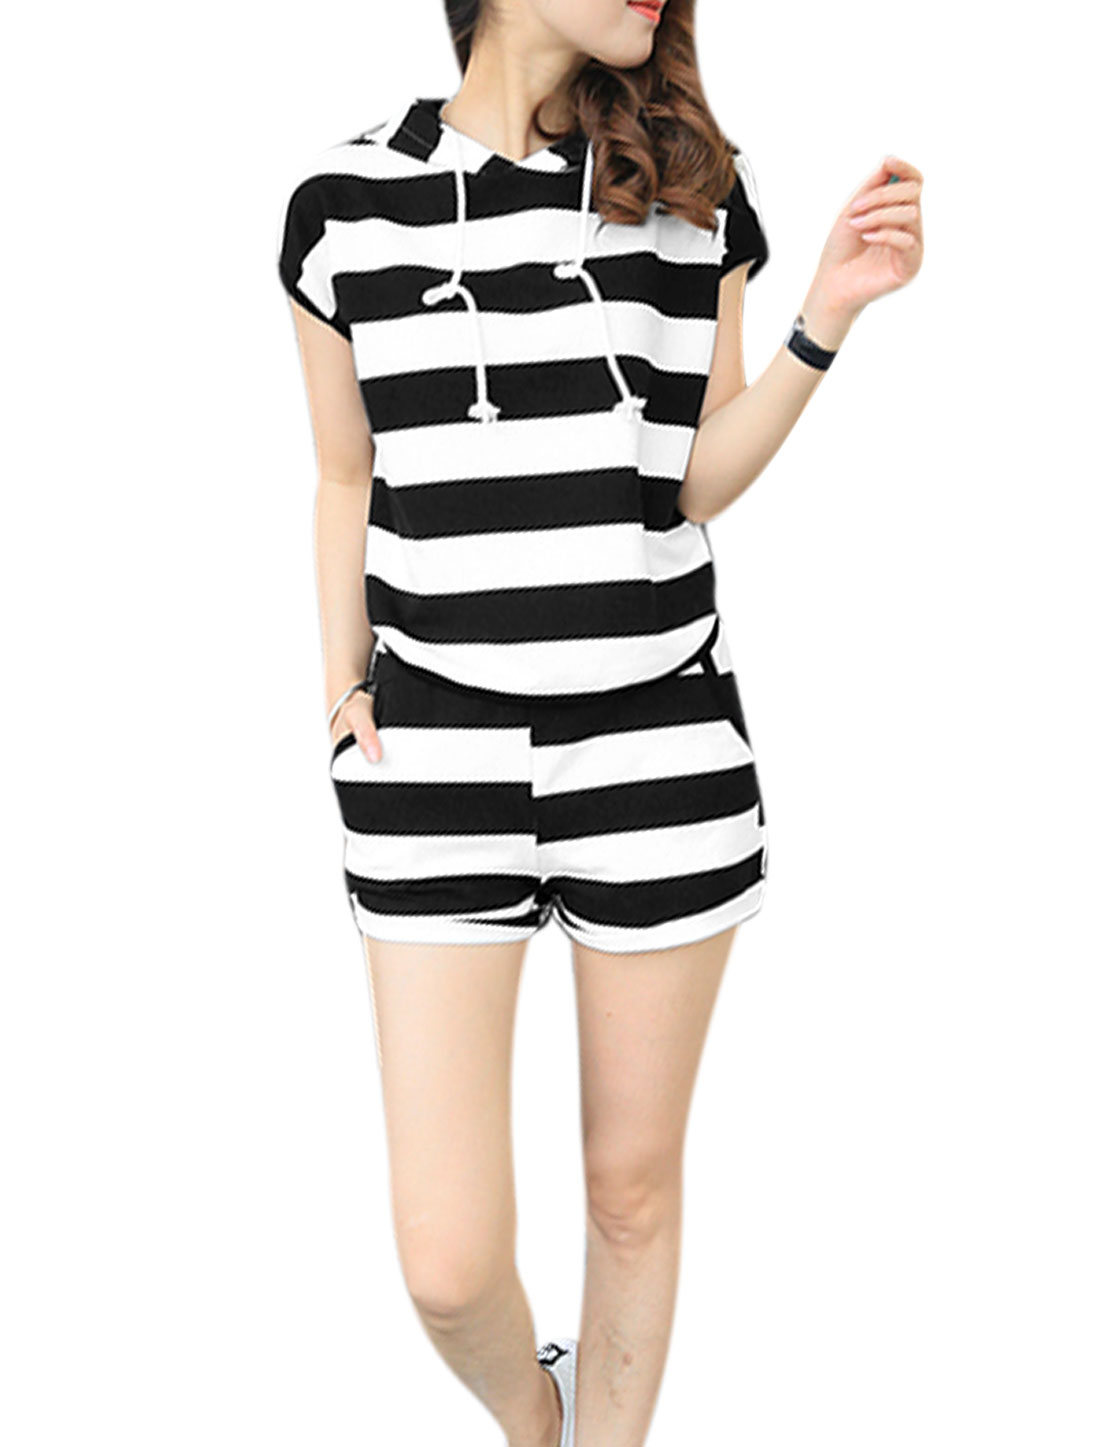 Lady Bold Stripes Hooded Top w Elastic Waist Shorts Sets Black White XS